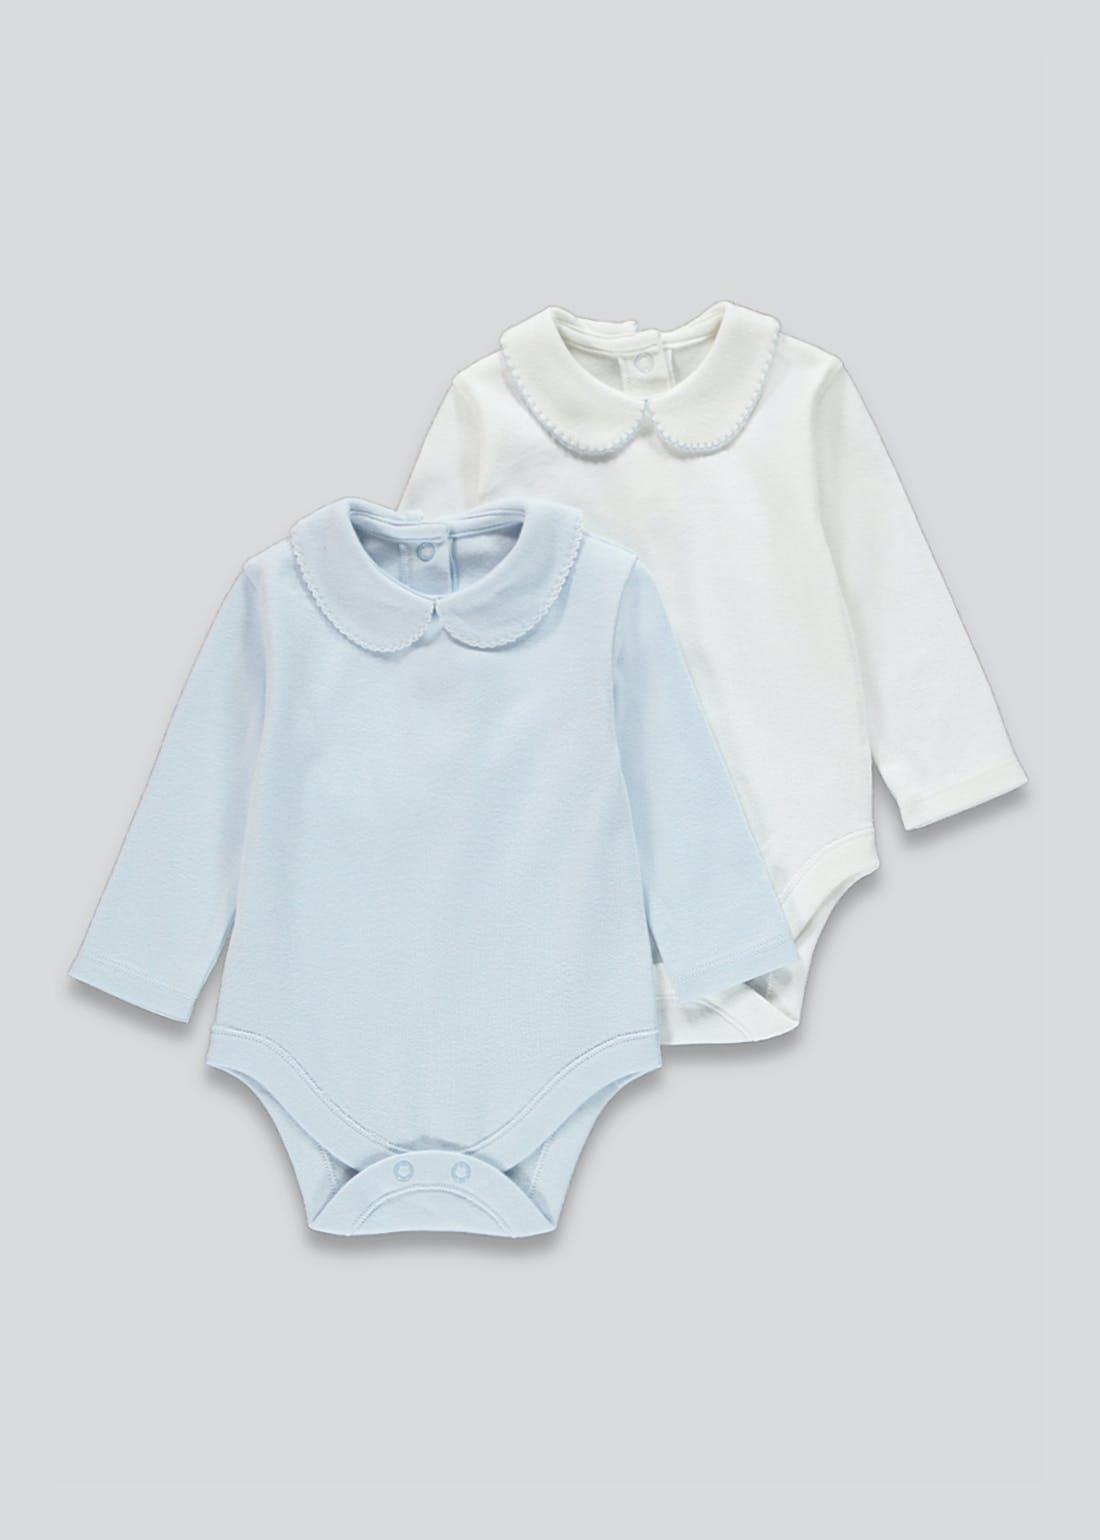 Unisex 2 Pack Peter Pan Collar Bodysuits (Tiny Baby-18mths)